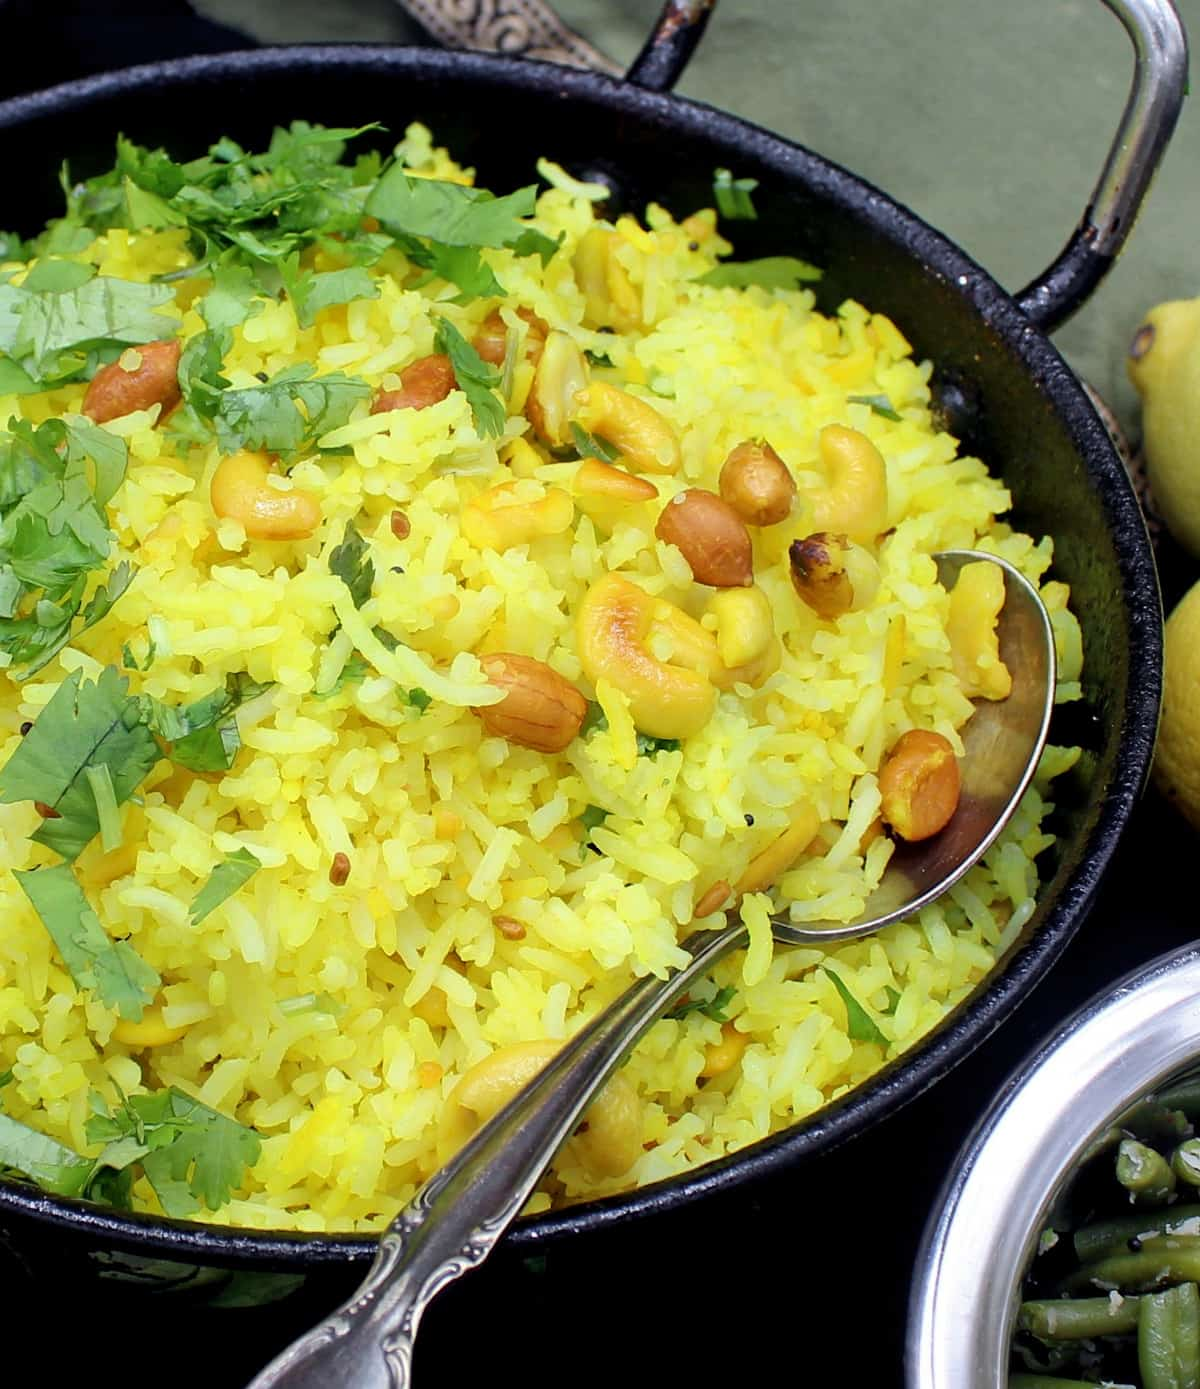 Tight closeup of a steel kadhai with bright yellow lemon rice with mustard seeds, cilantro, peanuts, cashews and red pepper, with a green bean curry next to it. Also in the shot is a green and gold napkin and lemons on a black background.